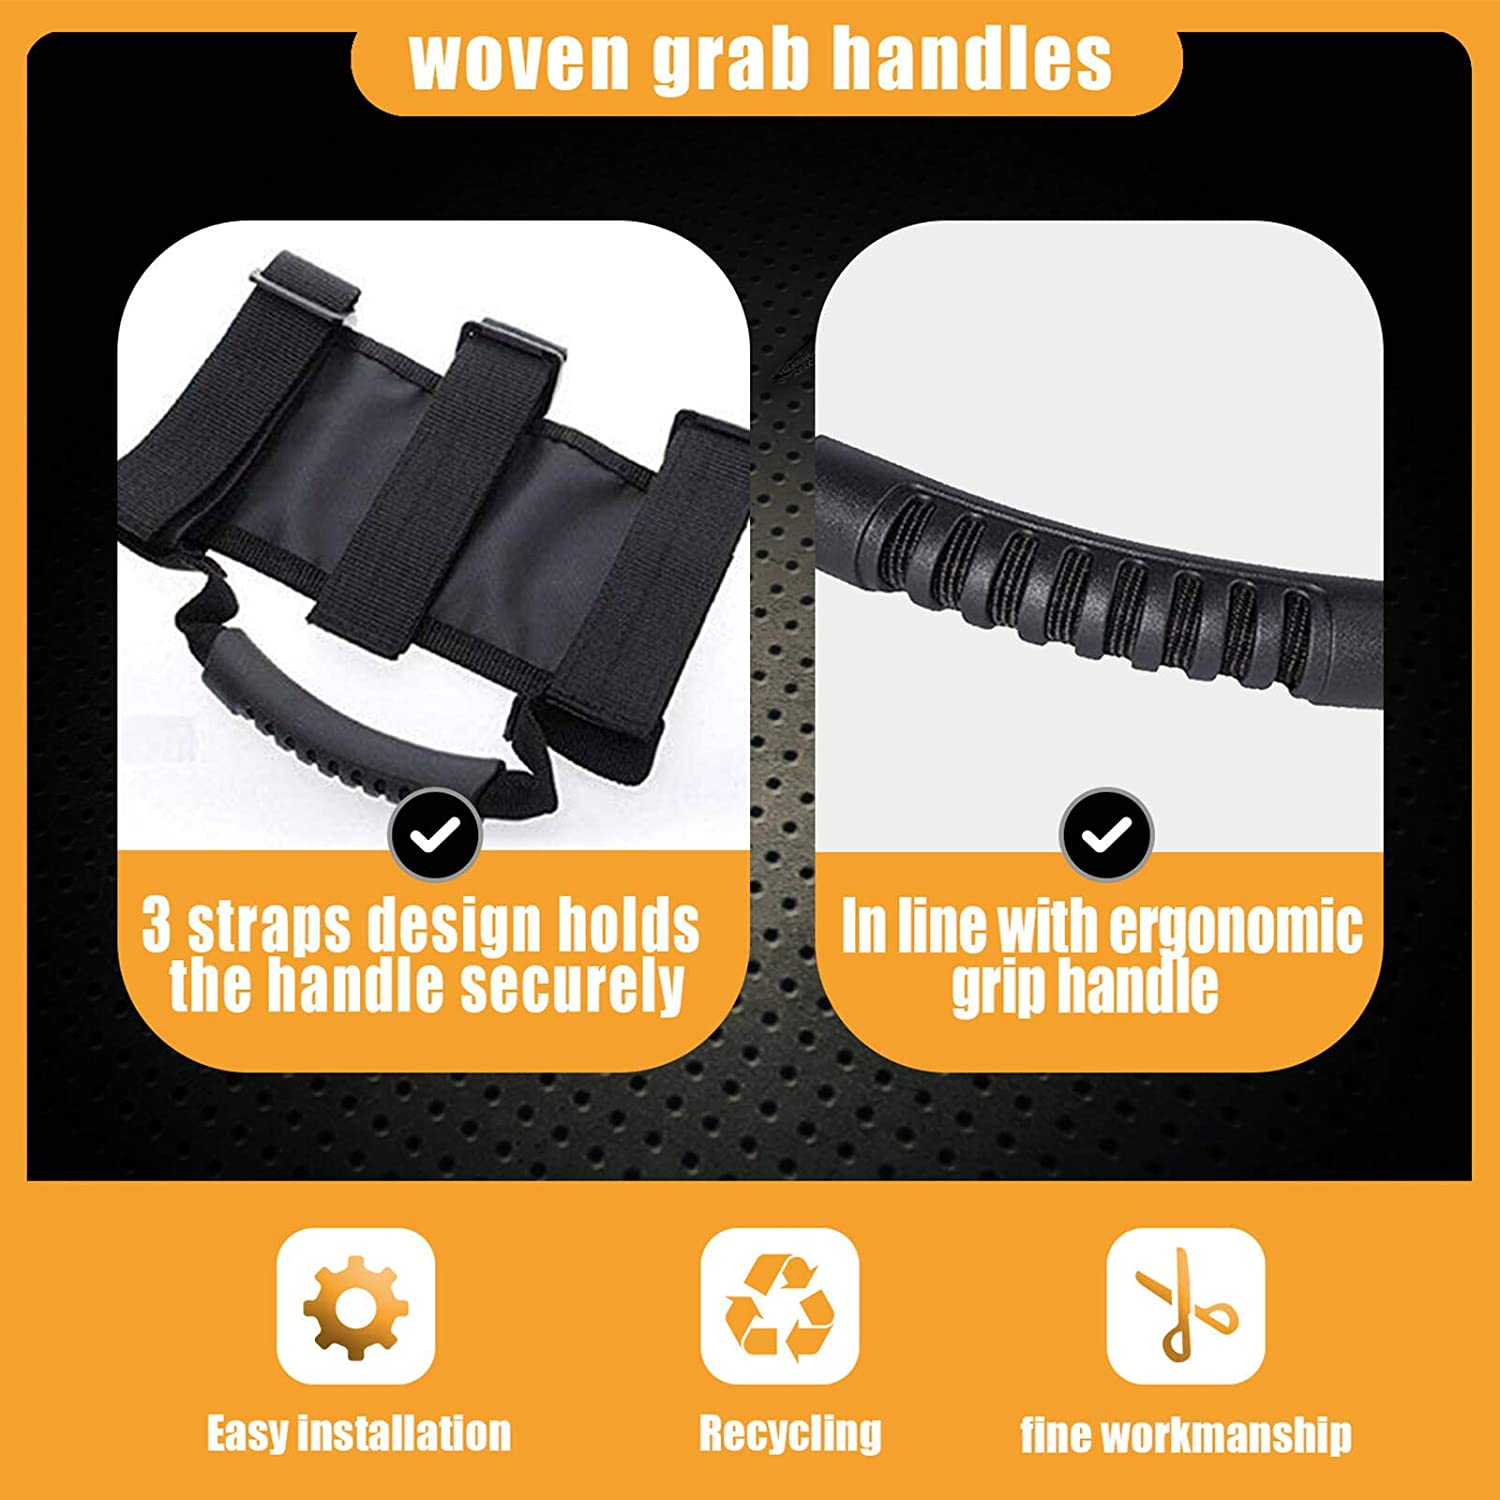 Waterluu Jeep Wrangler Roll Bar Grab Handles Wrangler Accessories 2 Pack-Camouflage Easy-to-Fit 3 Straps Design for 1987-2018 Models Comouflage Grab Handles Set for Jeep Wrangler Roll Bars